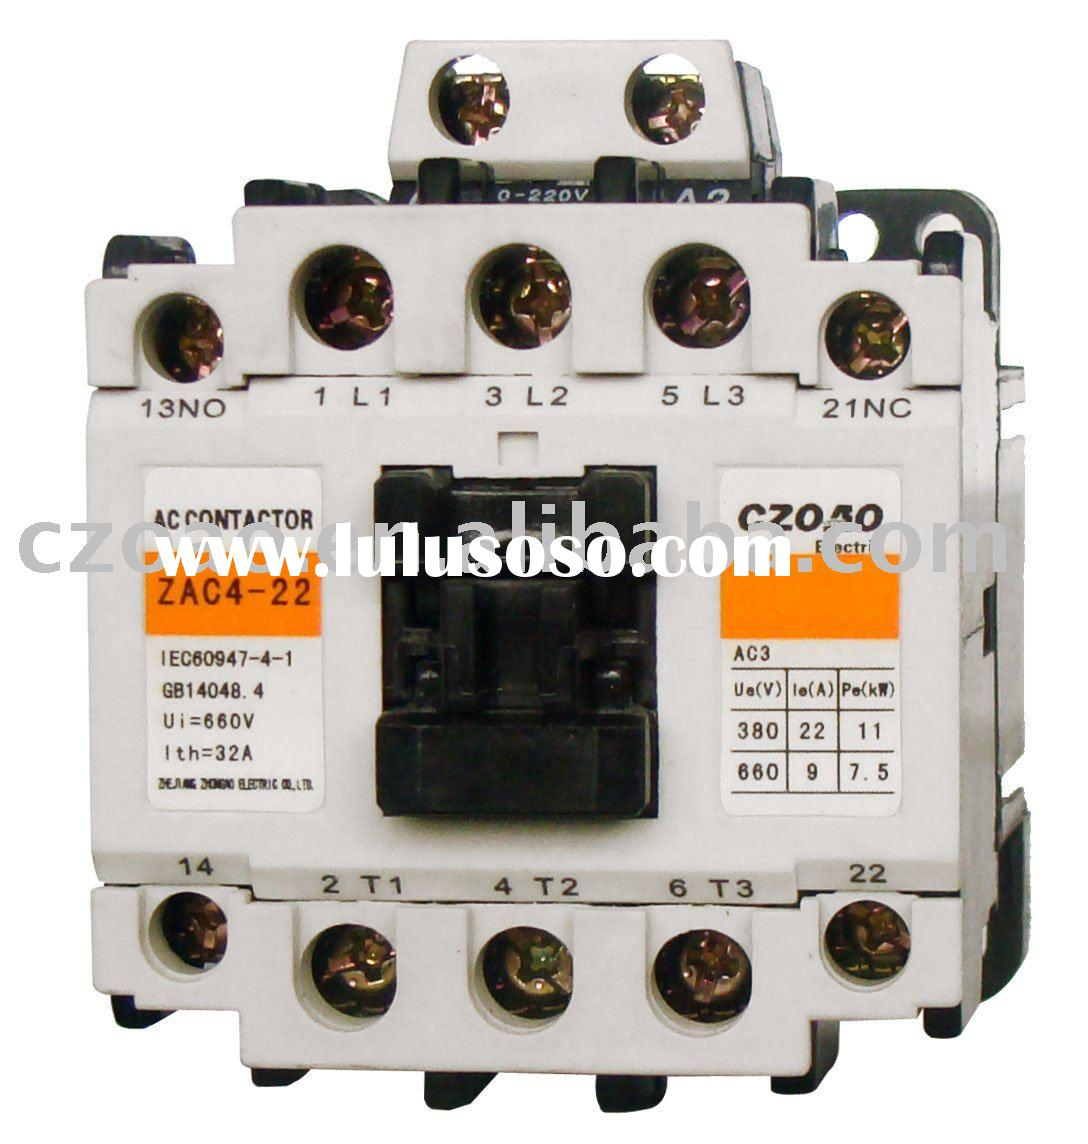 Wiring Diagram For Ac Contactor : Contactor wiring diagram position selector switch